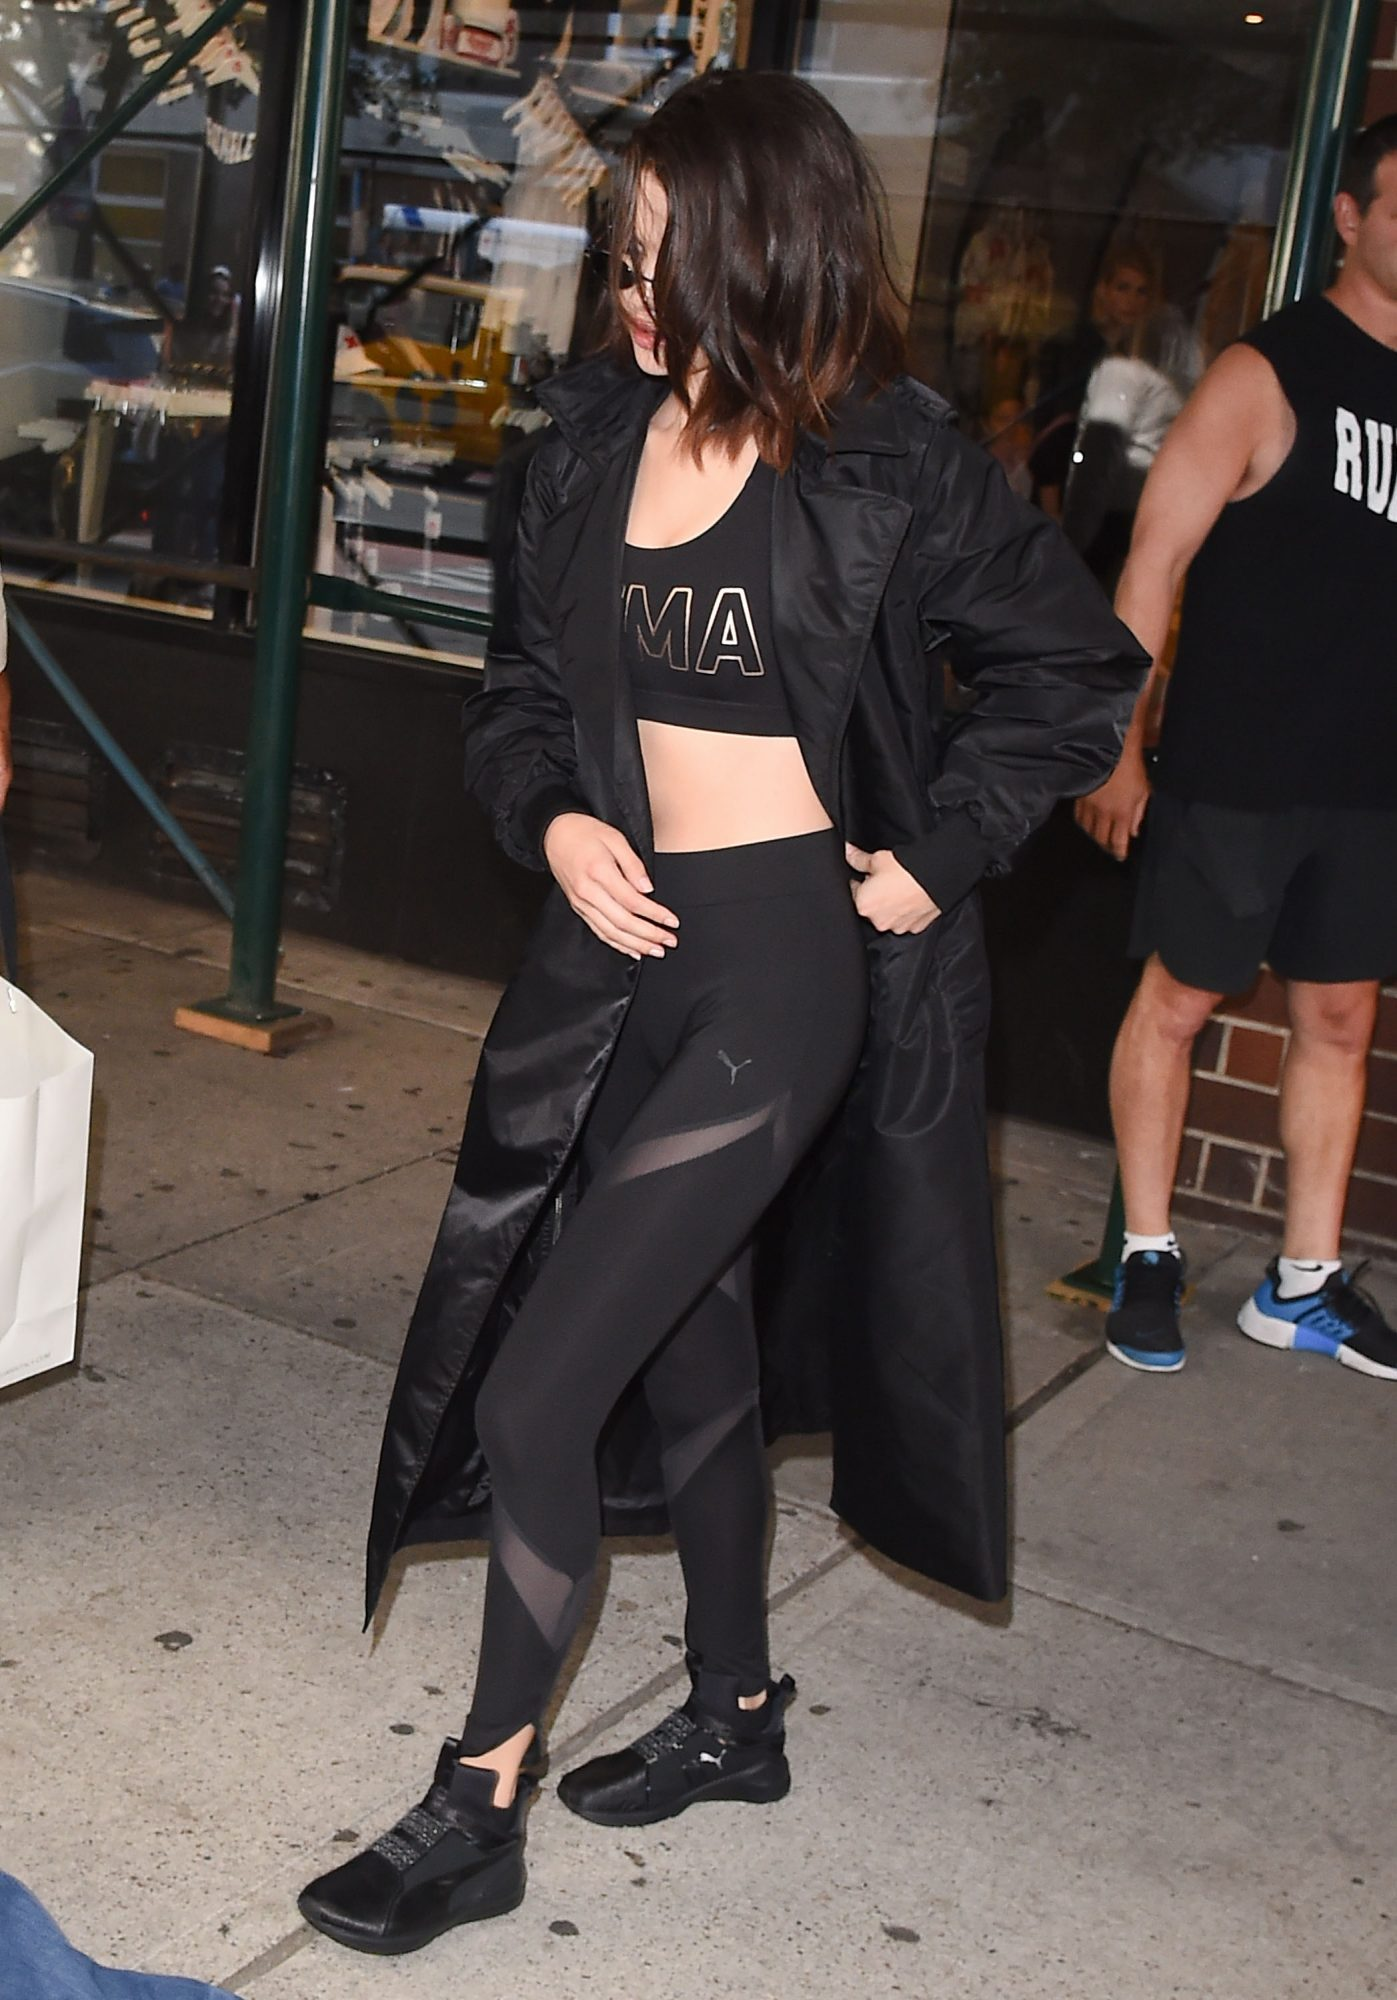 Selena Gomez seen coming out of rumble gym in NYC